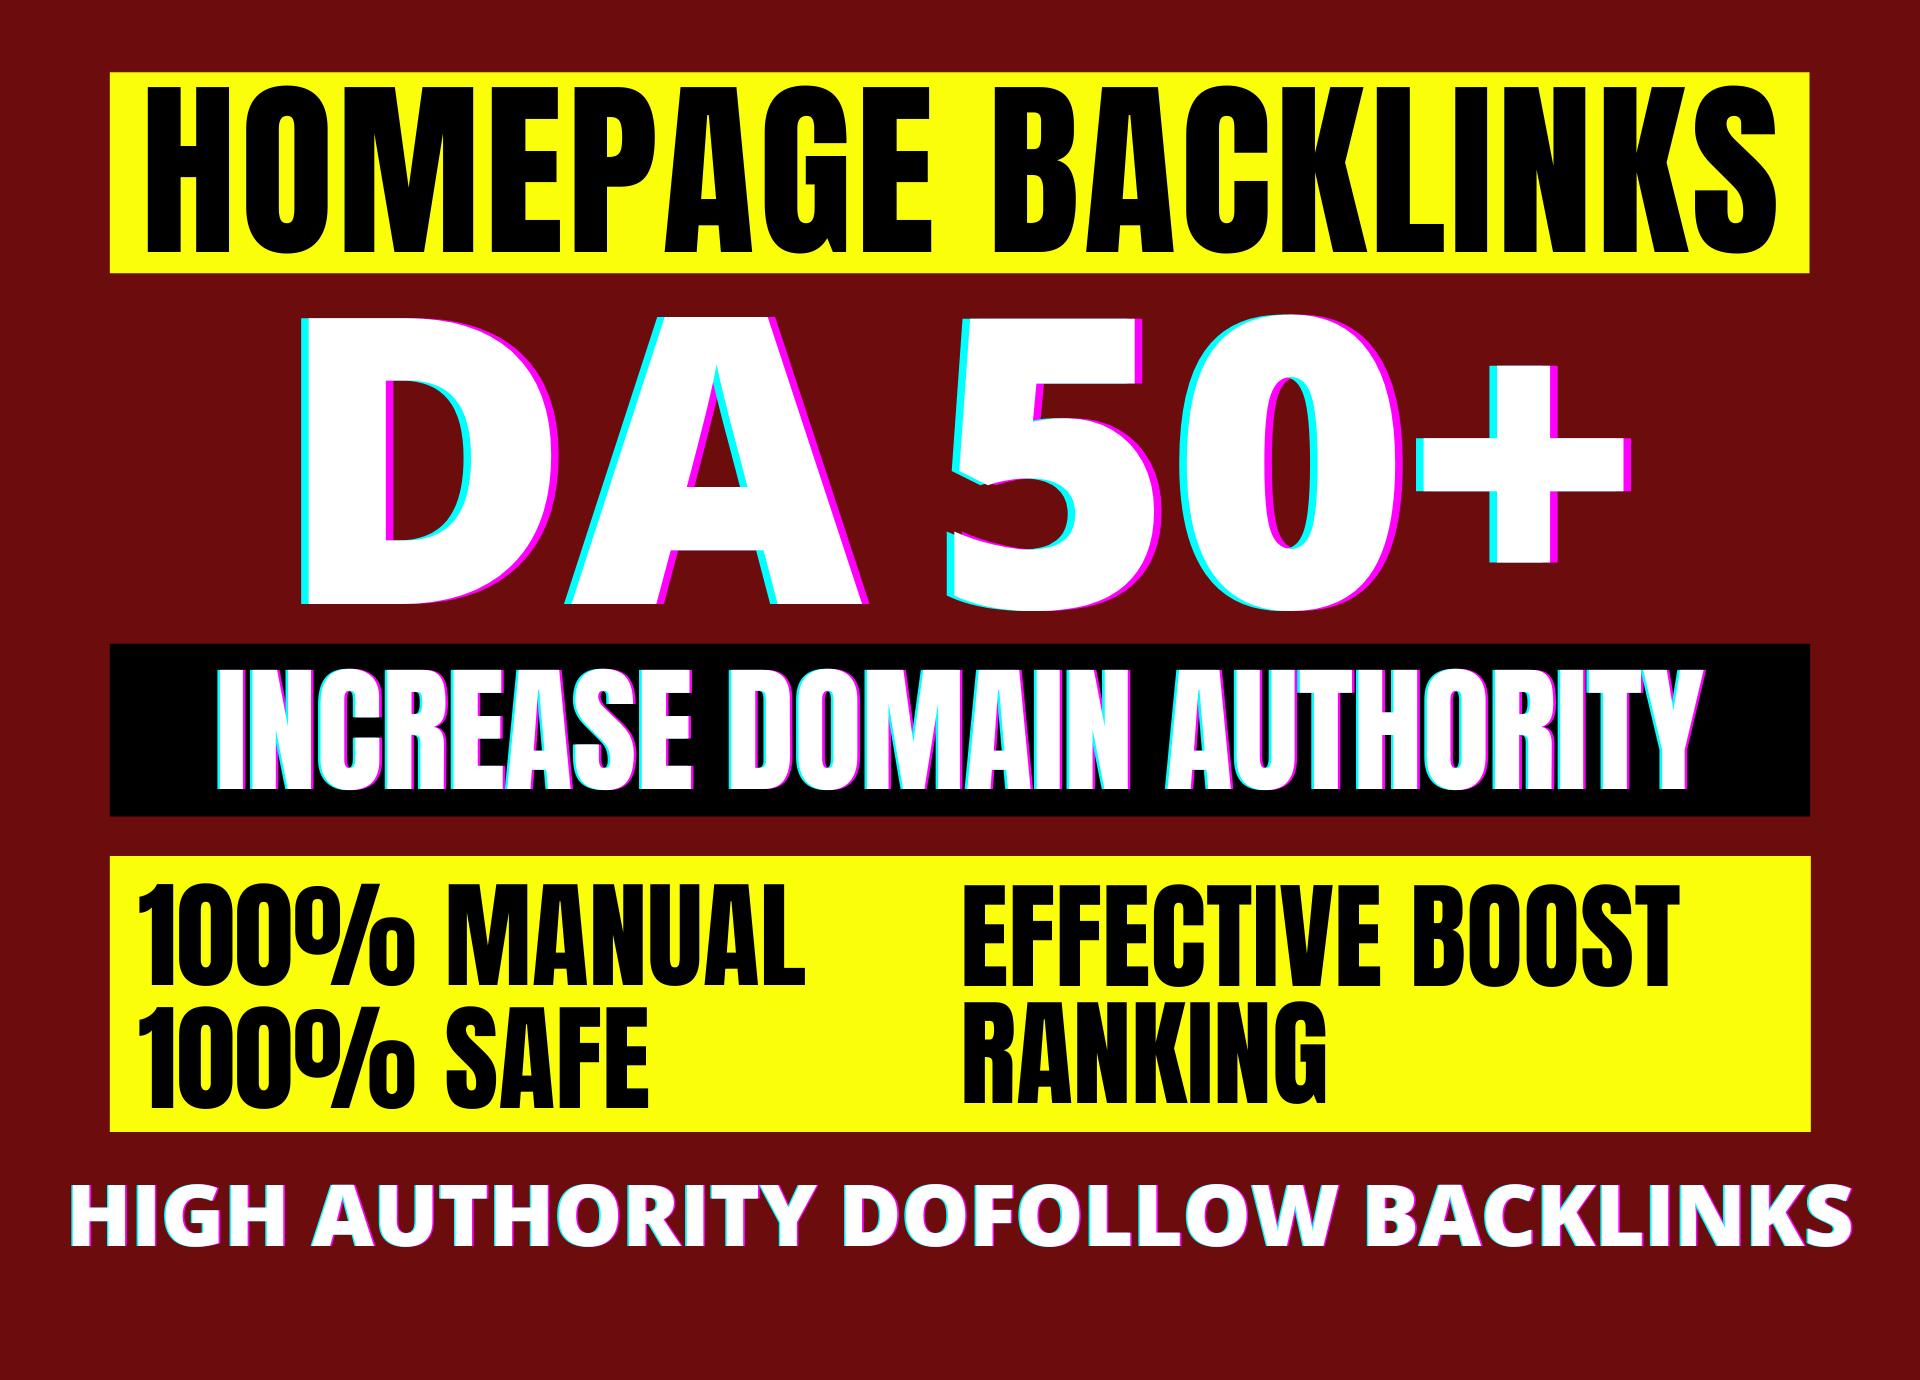 I will increase domain authority DA 50+ by SEO high authority backlinks